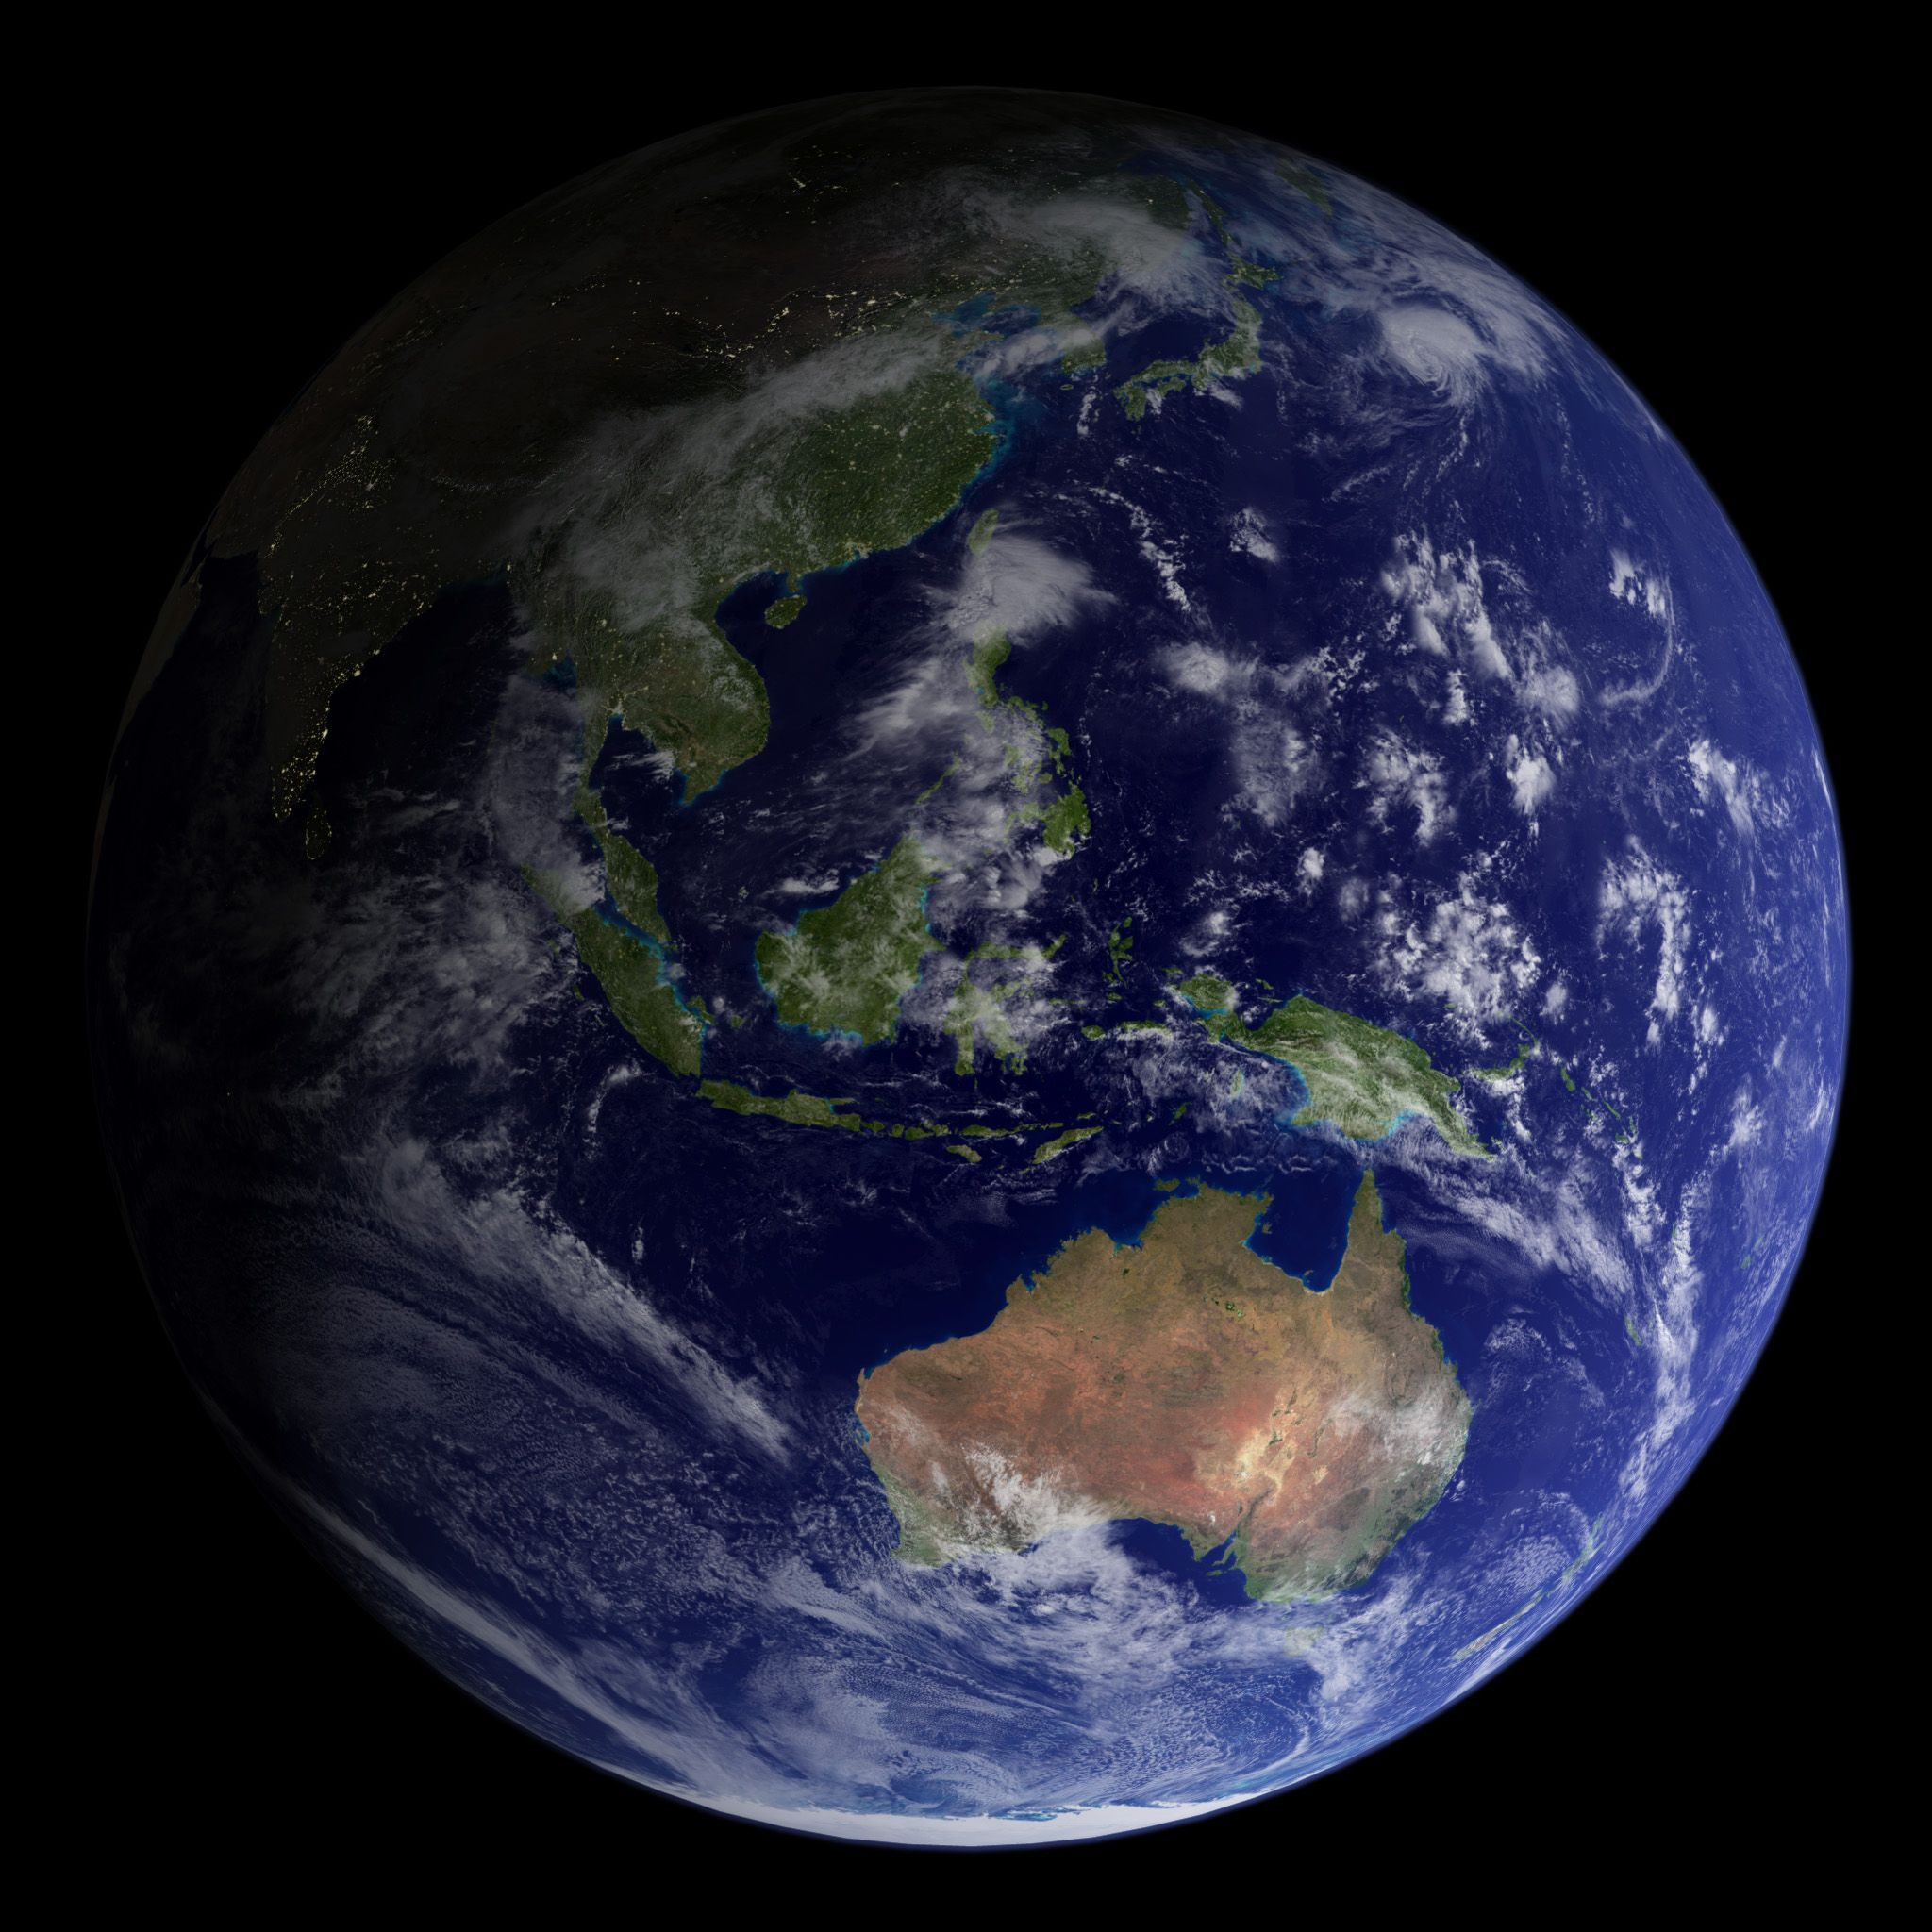 Nasa Pictures Of The Universe Blue Marble Image Nasa Image By Robert Simmon And Reto Stockli Heelal Aarde